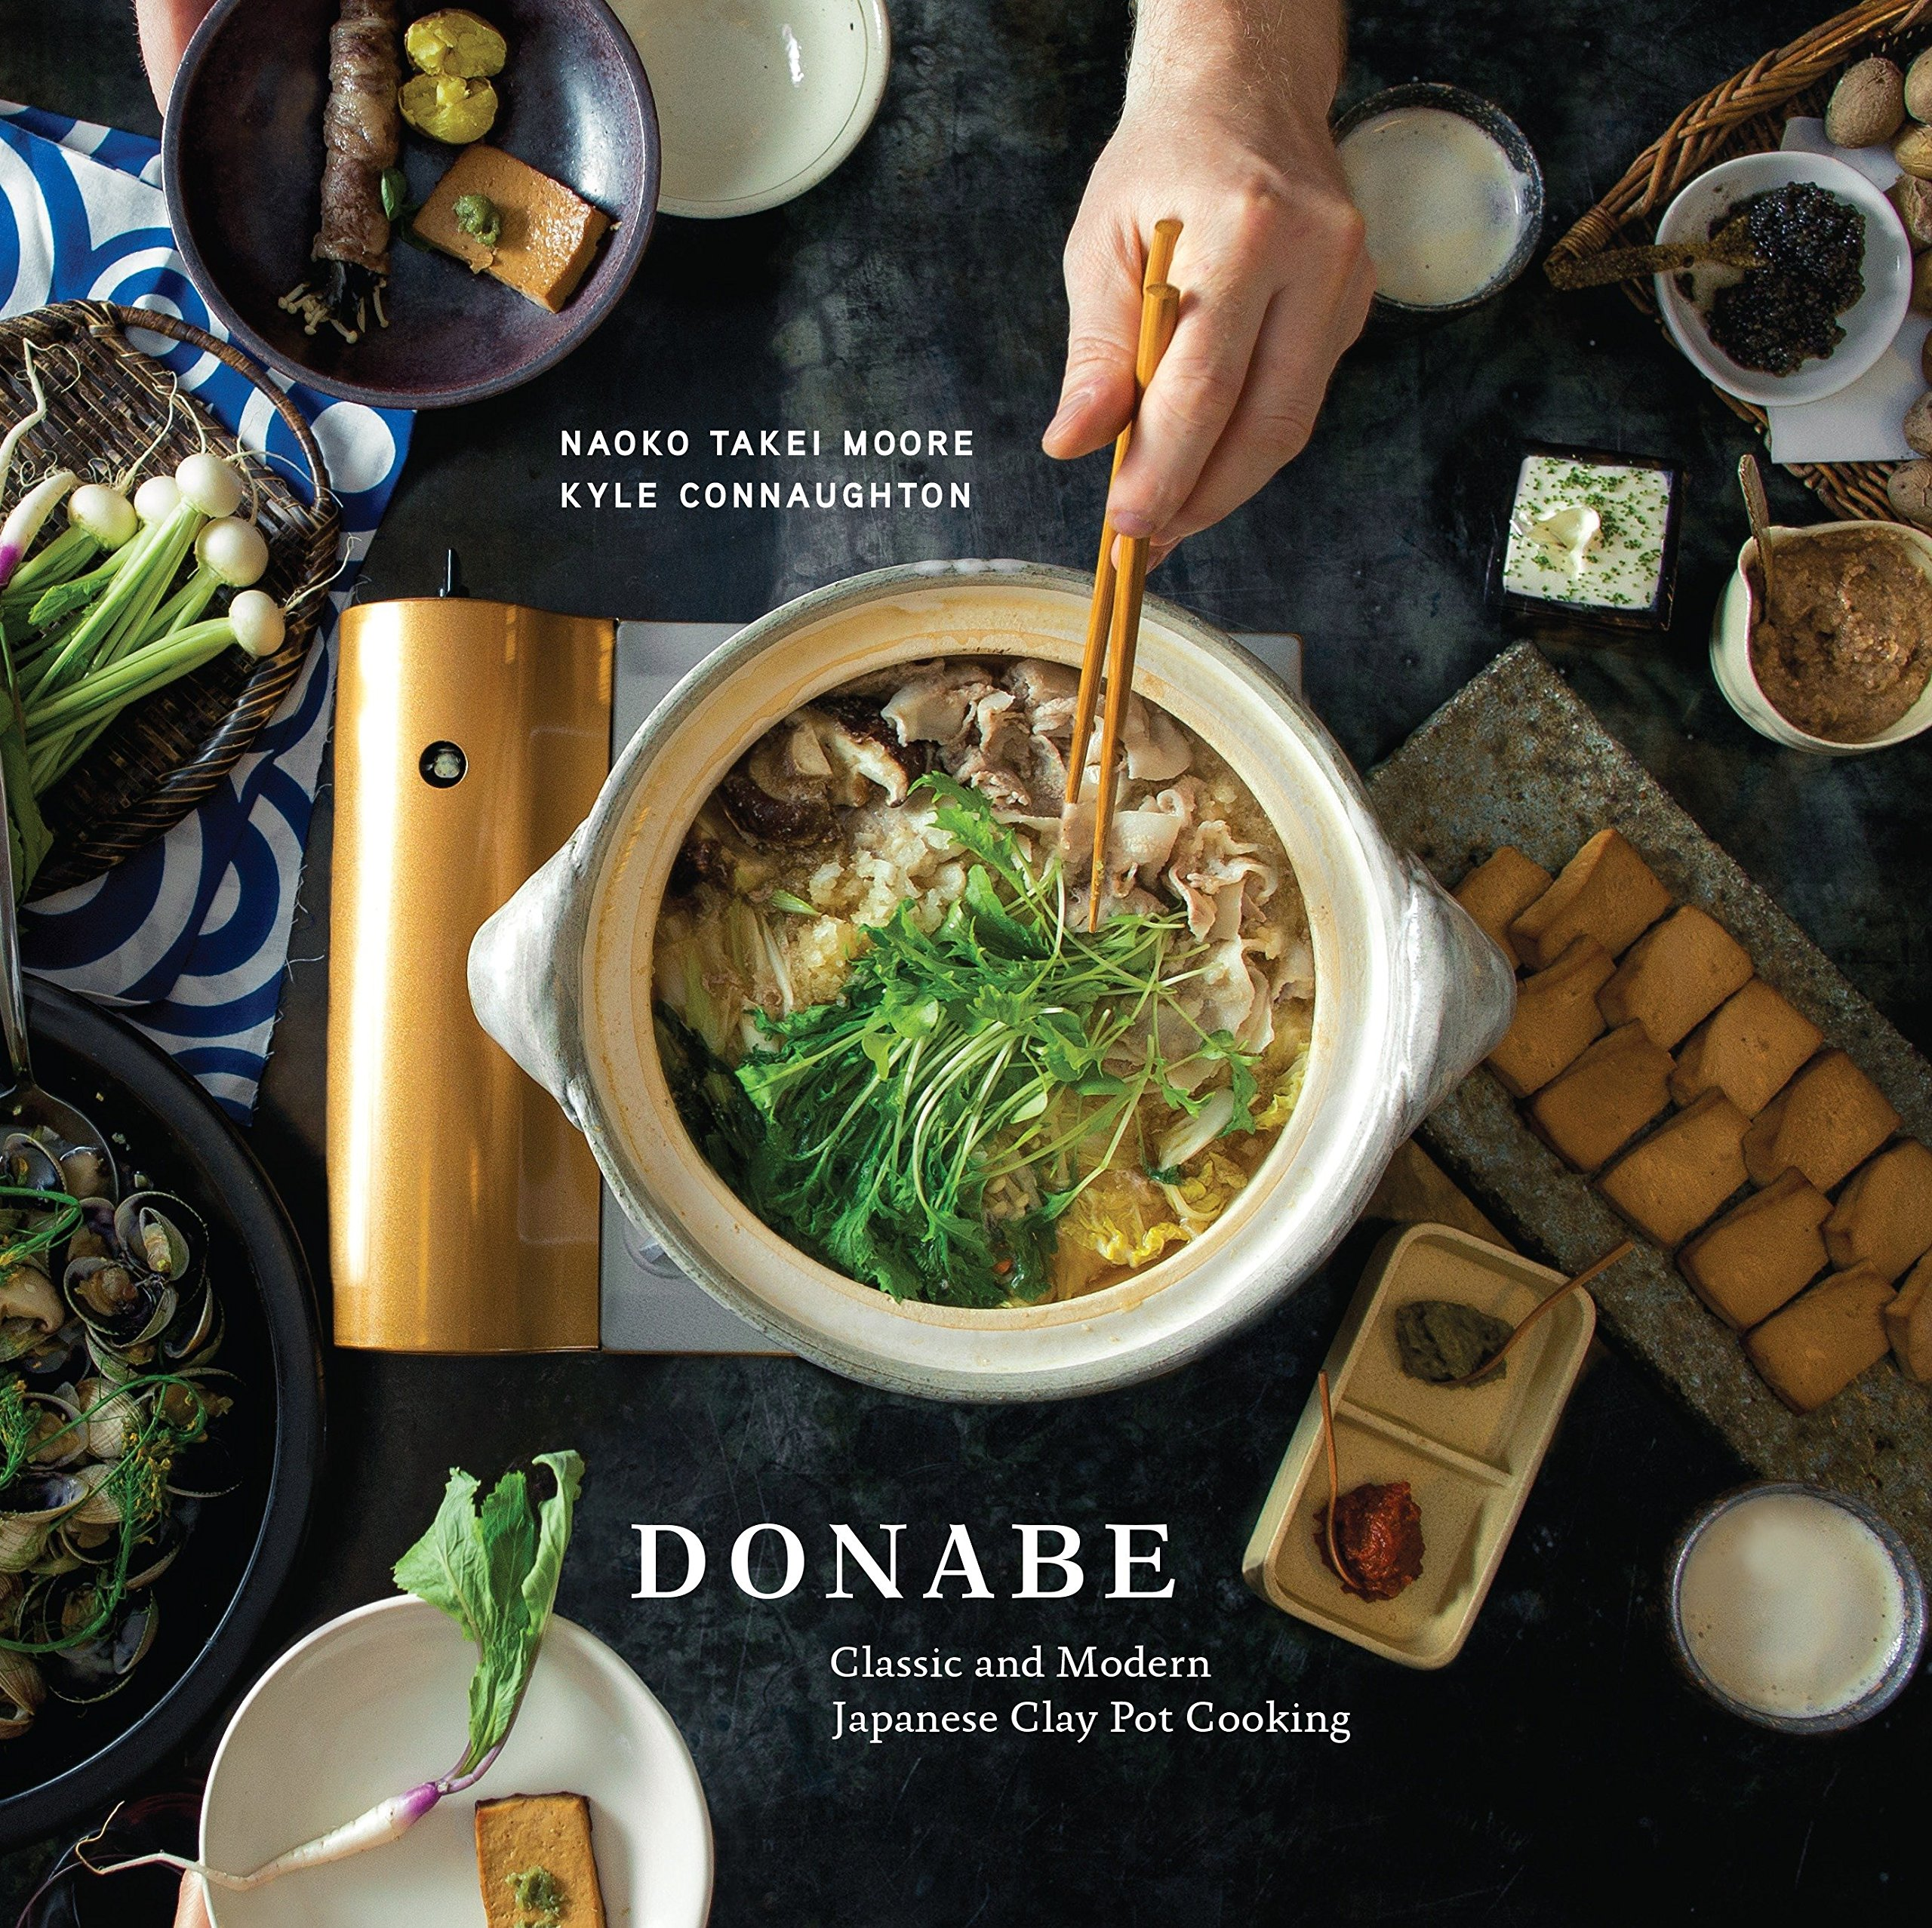 Donabe: Classic and Modern Japanese Clay Pot Cooking [A Cookbook]: Naoko  Takei Moore, Kyle Connaughton: 9781607746997: Amazon.com: Books